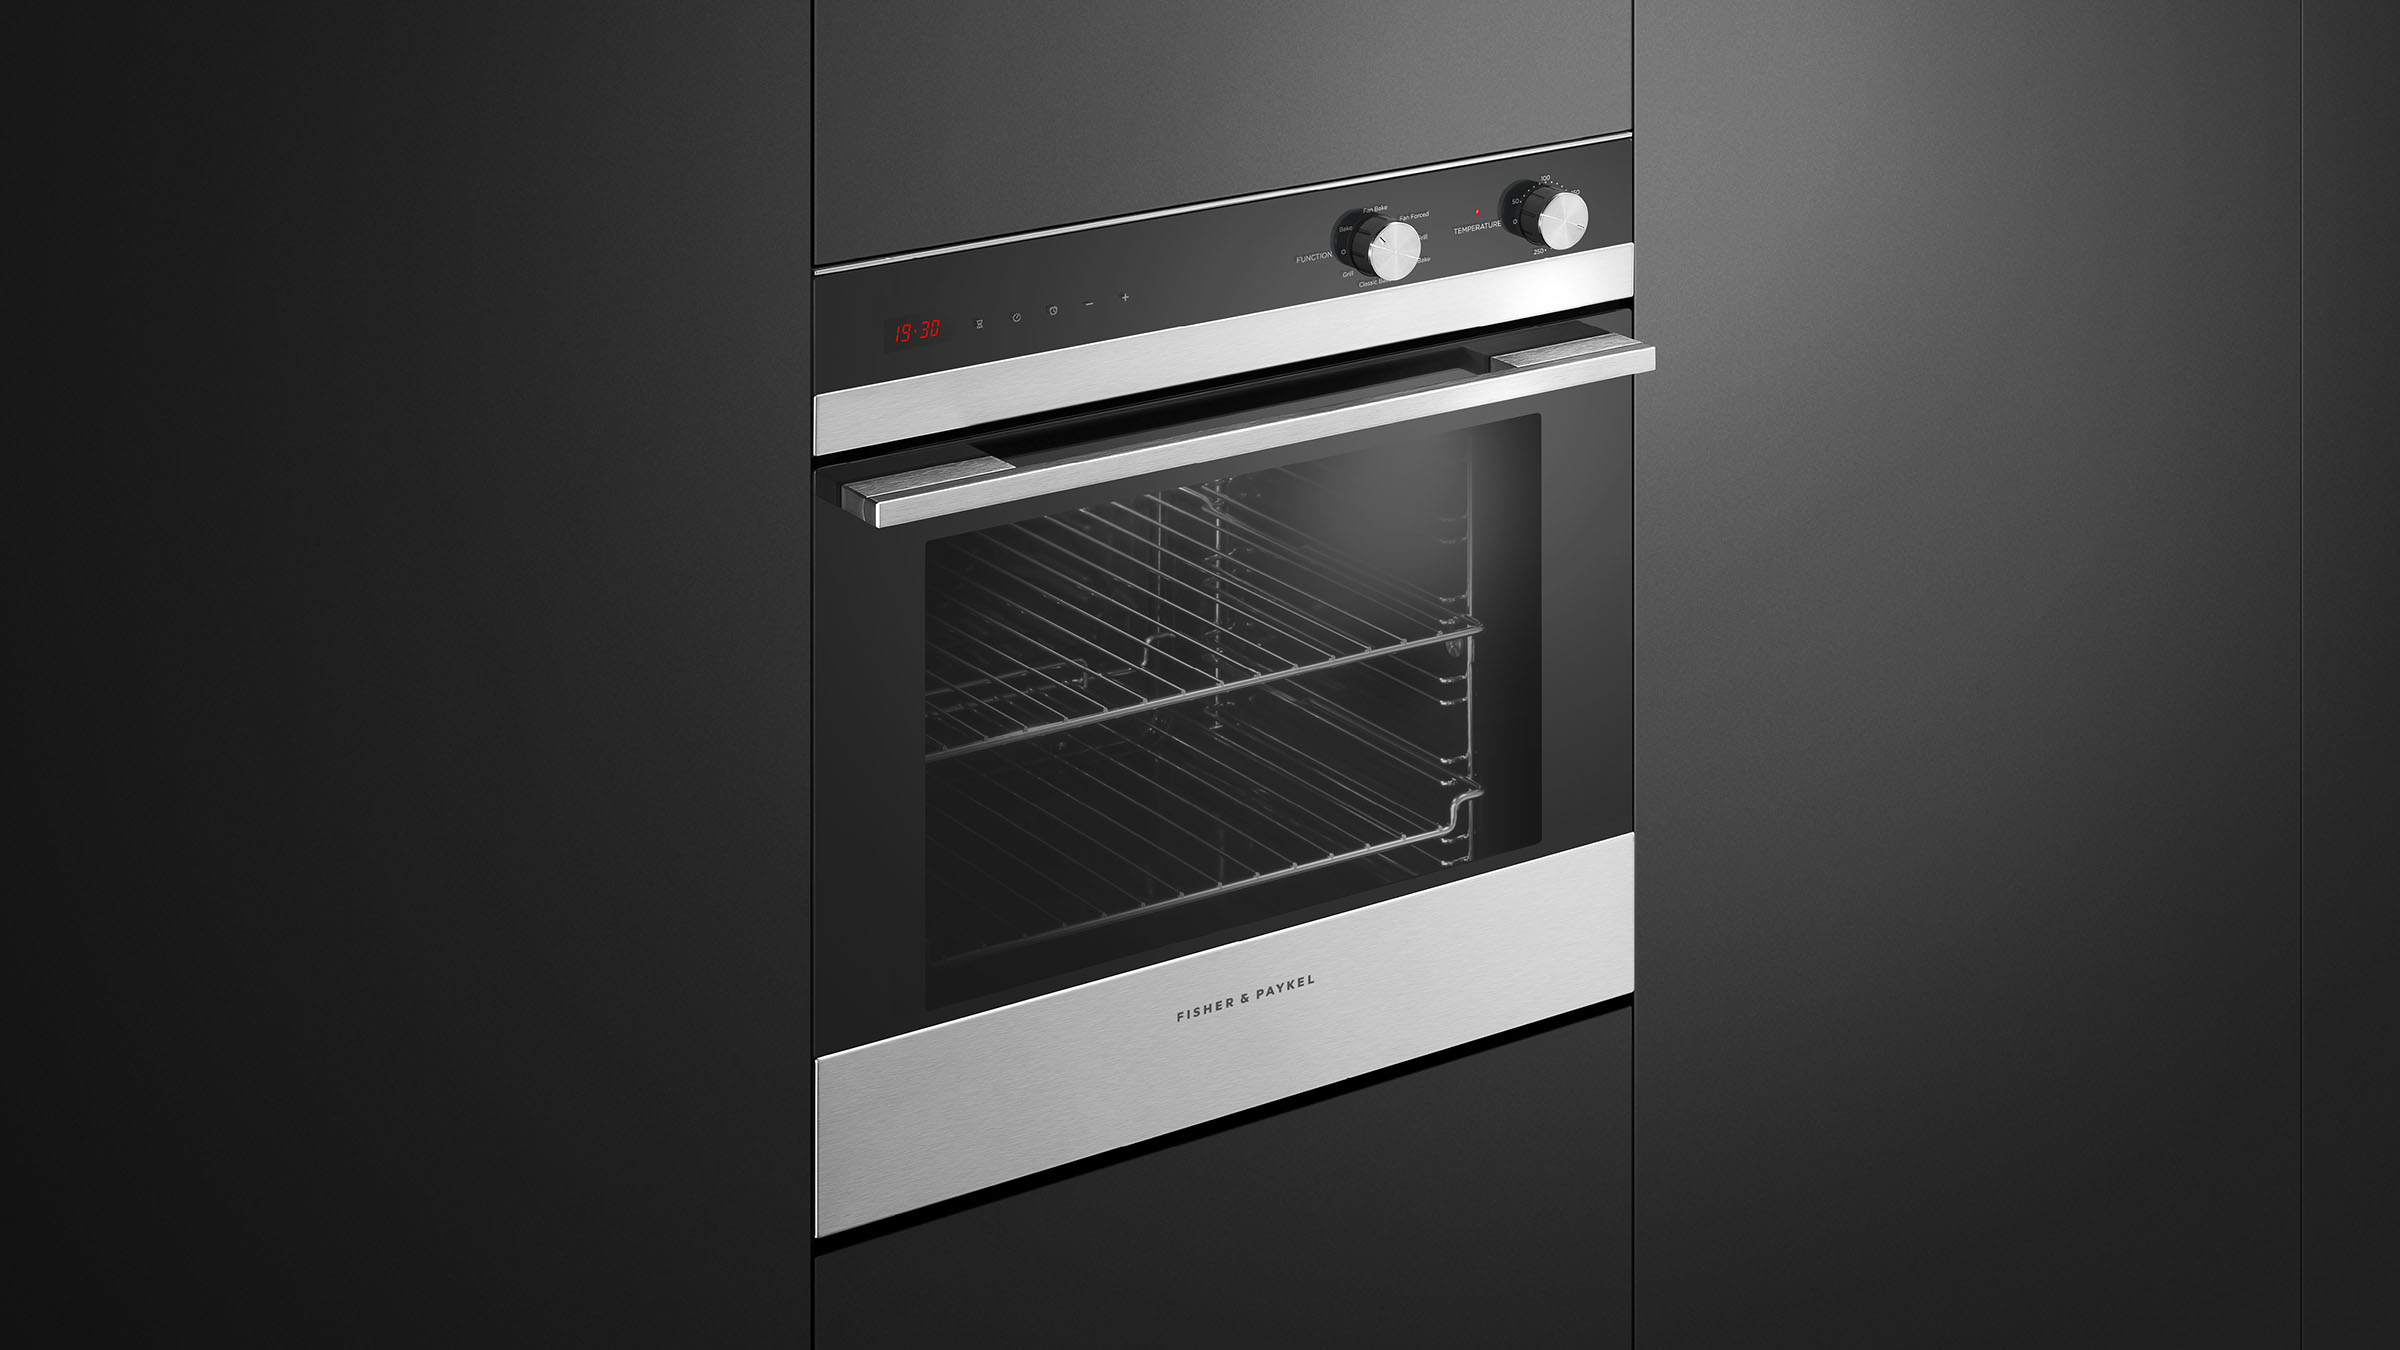 ob60sc7cex1 fisher and paykel function single built in oven rh fisherpaykel com  fisher paykel saffron oven instructions